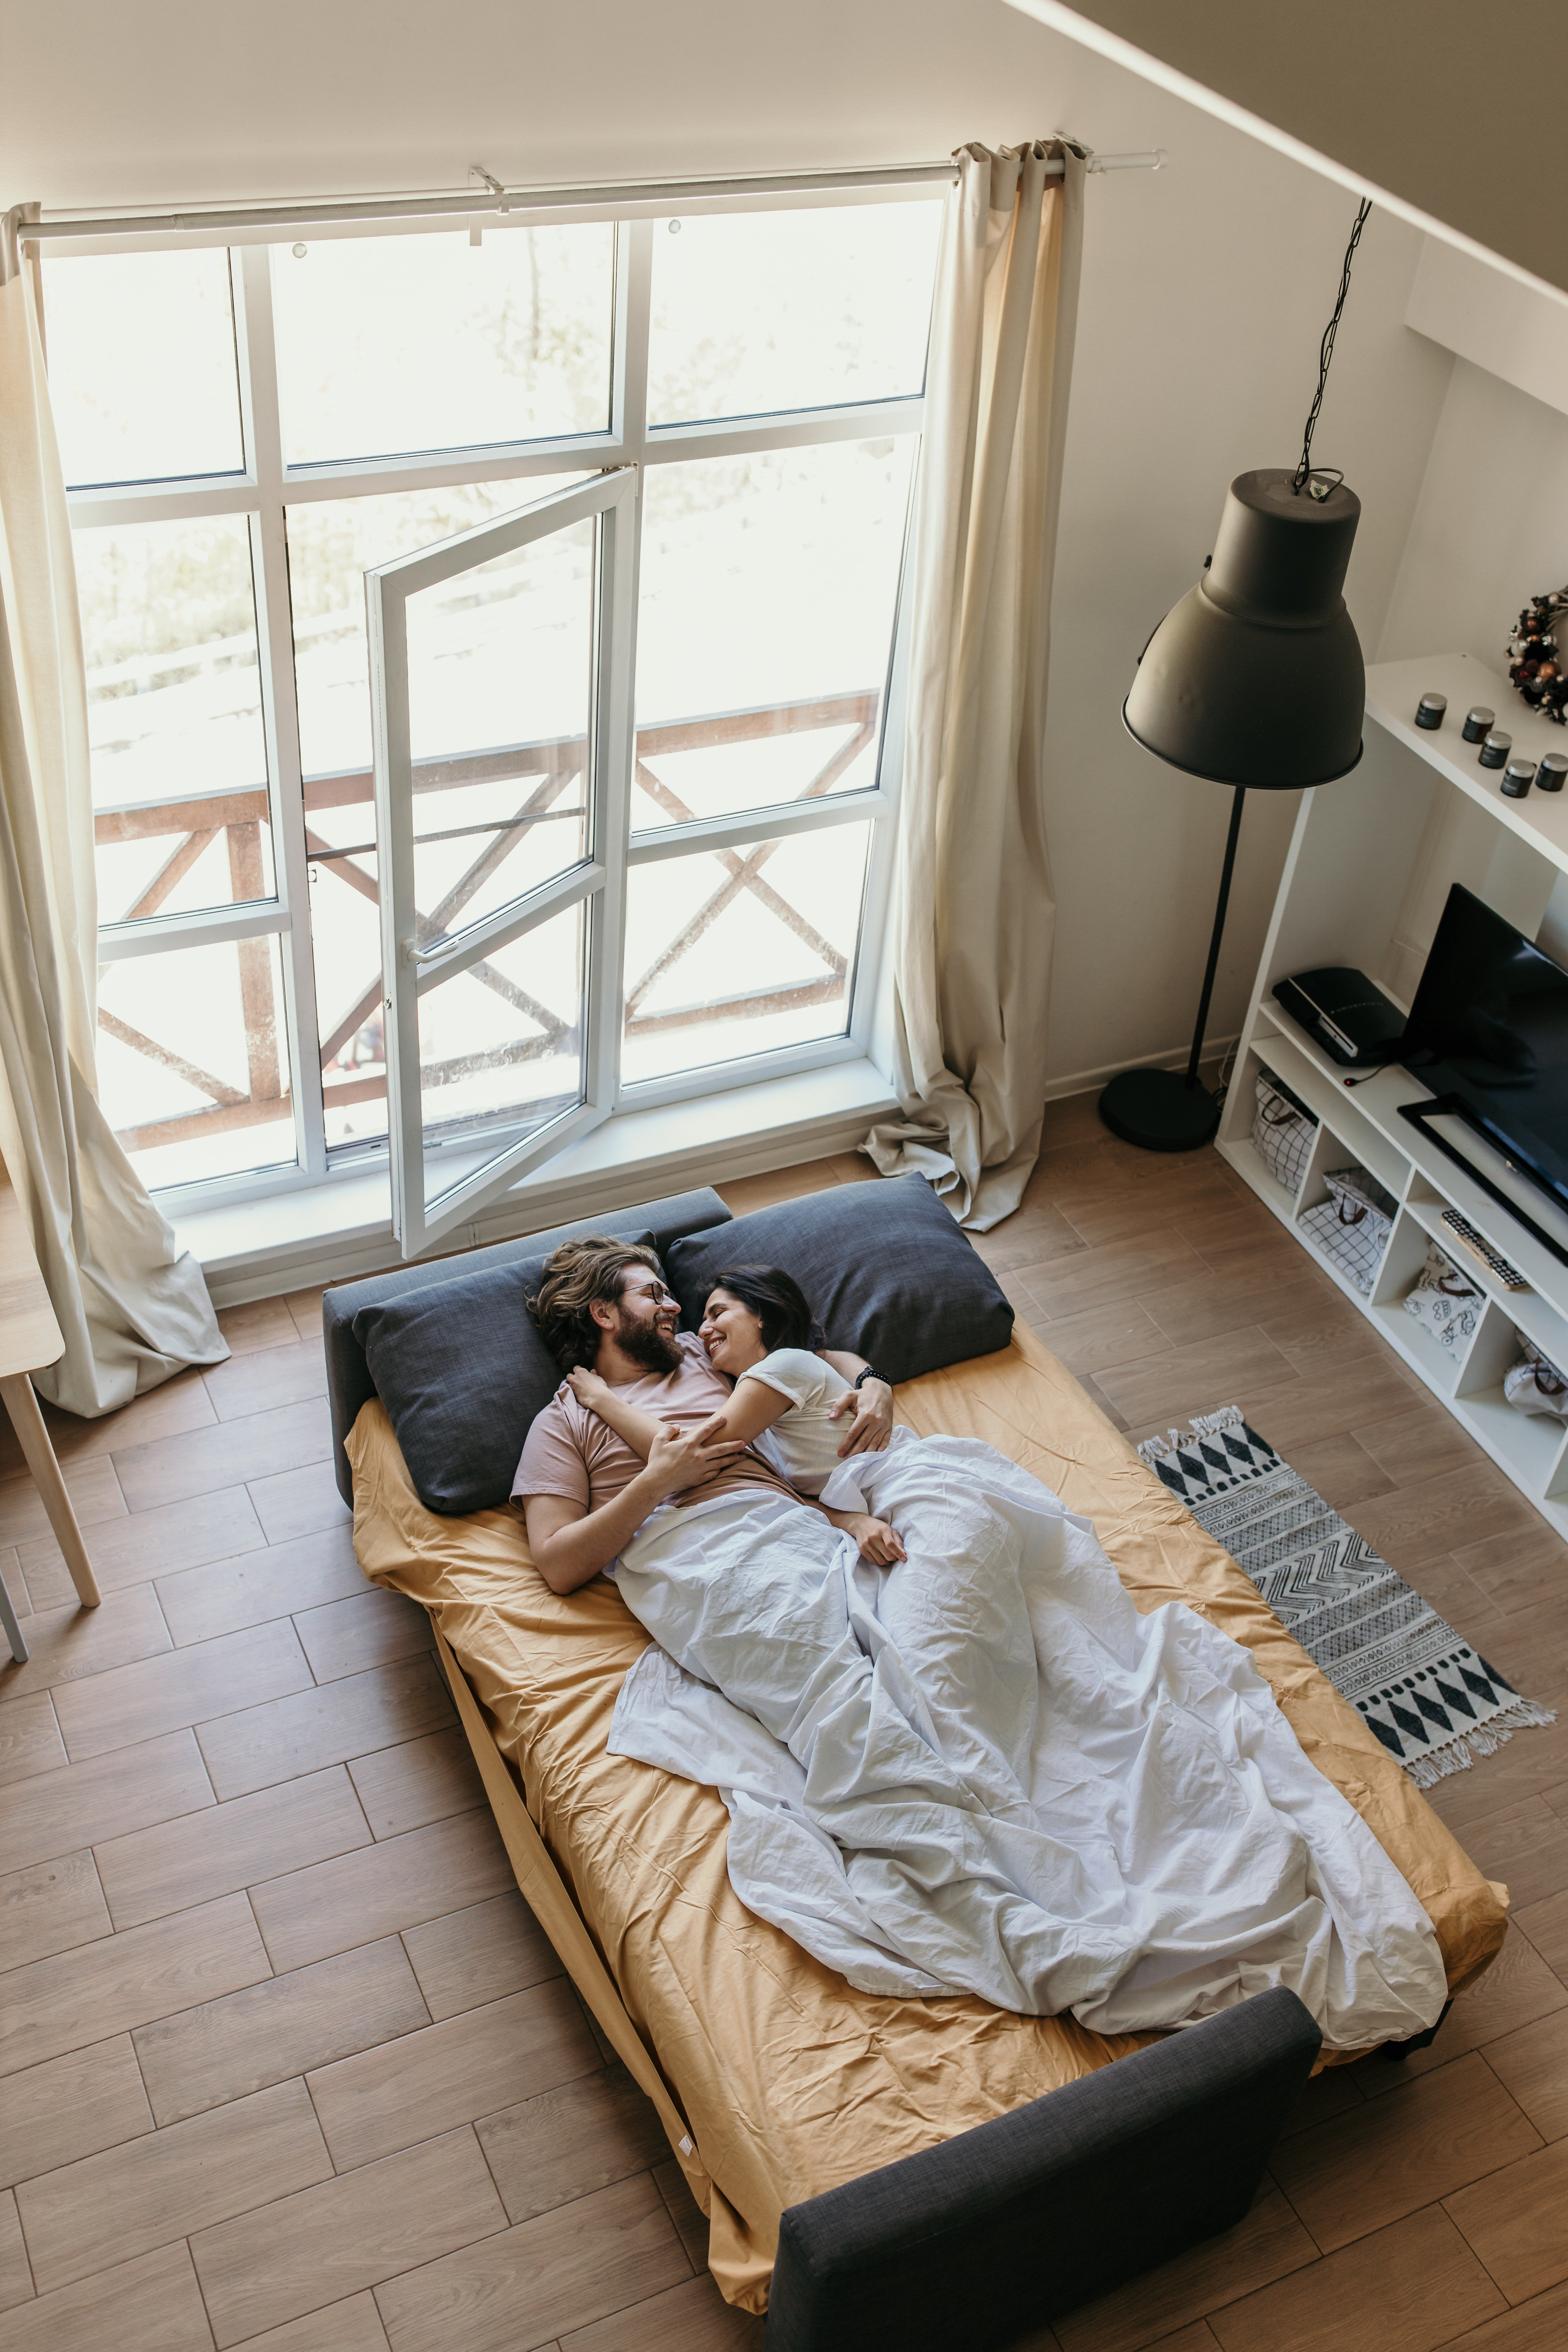 A couple lying together in bed. | Photo: Pexels